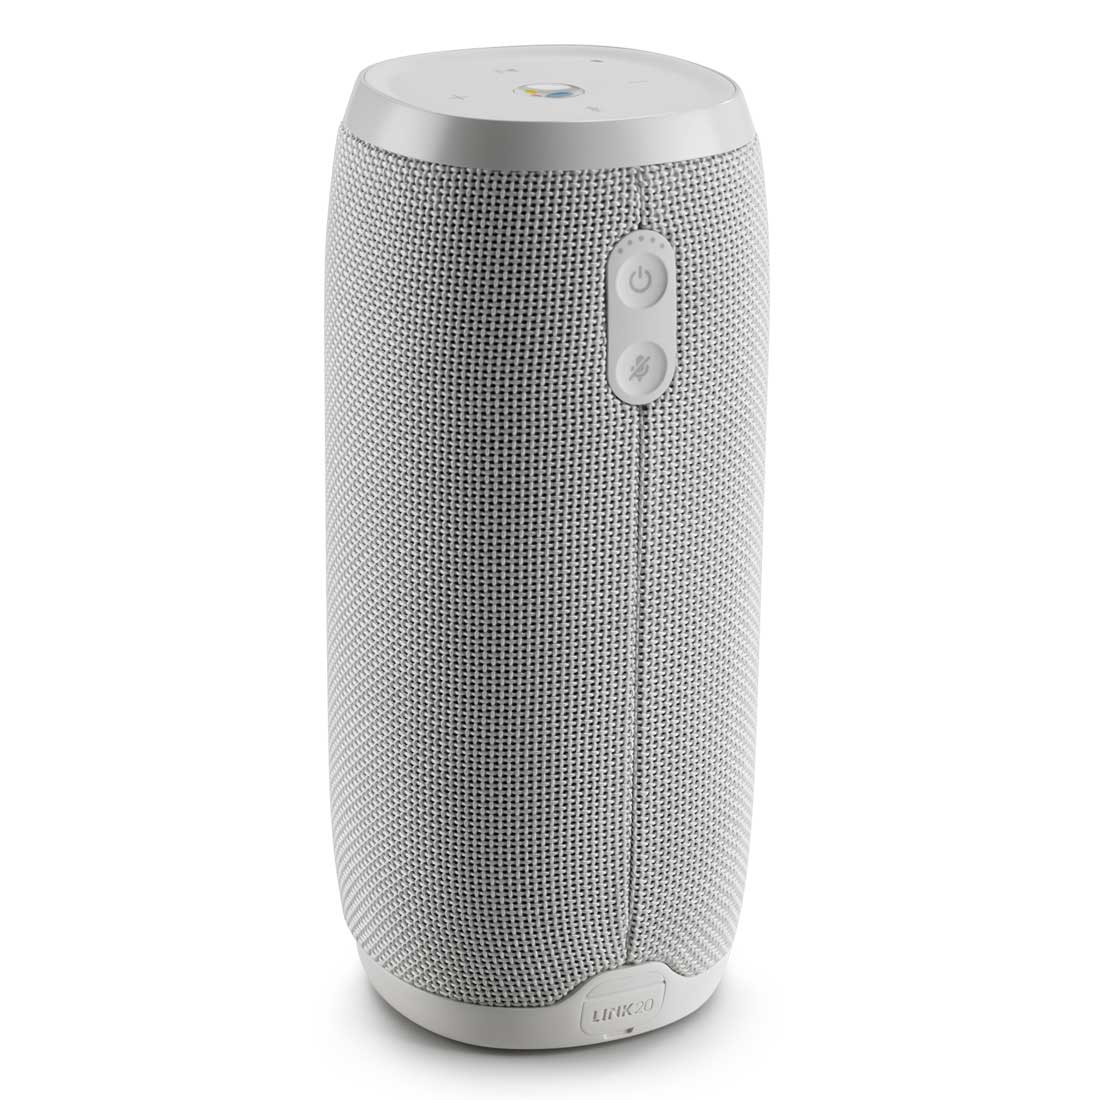 JBL Link 20 Voice Activated Waterproof Wireless Portable Speaker - White